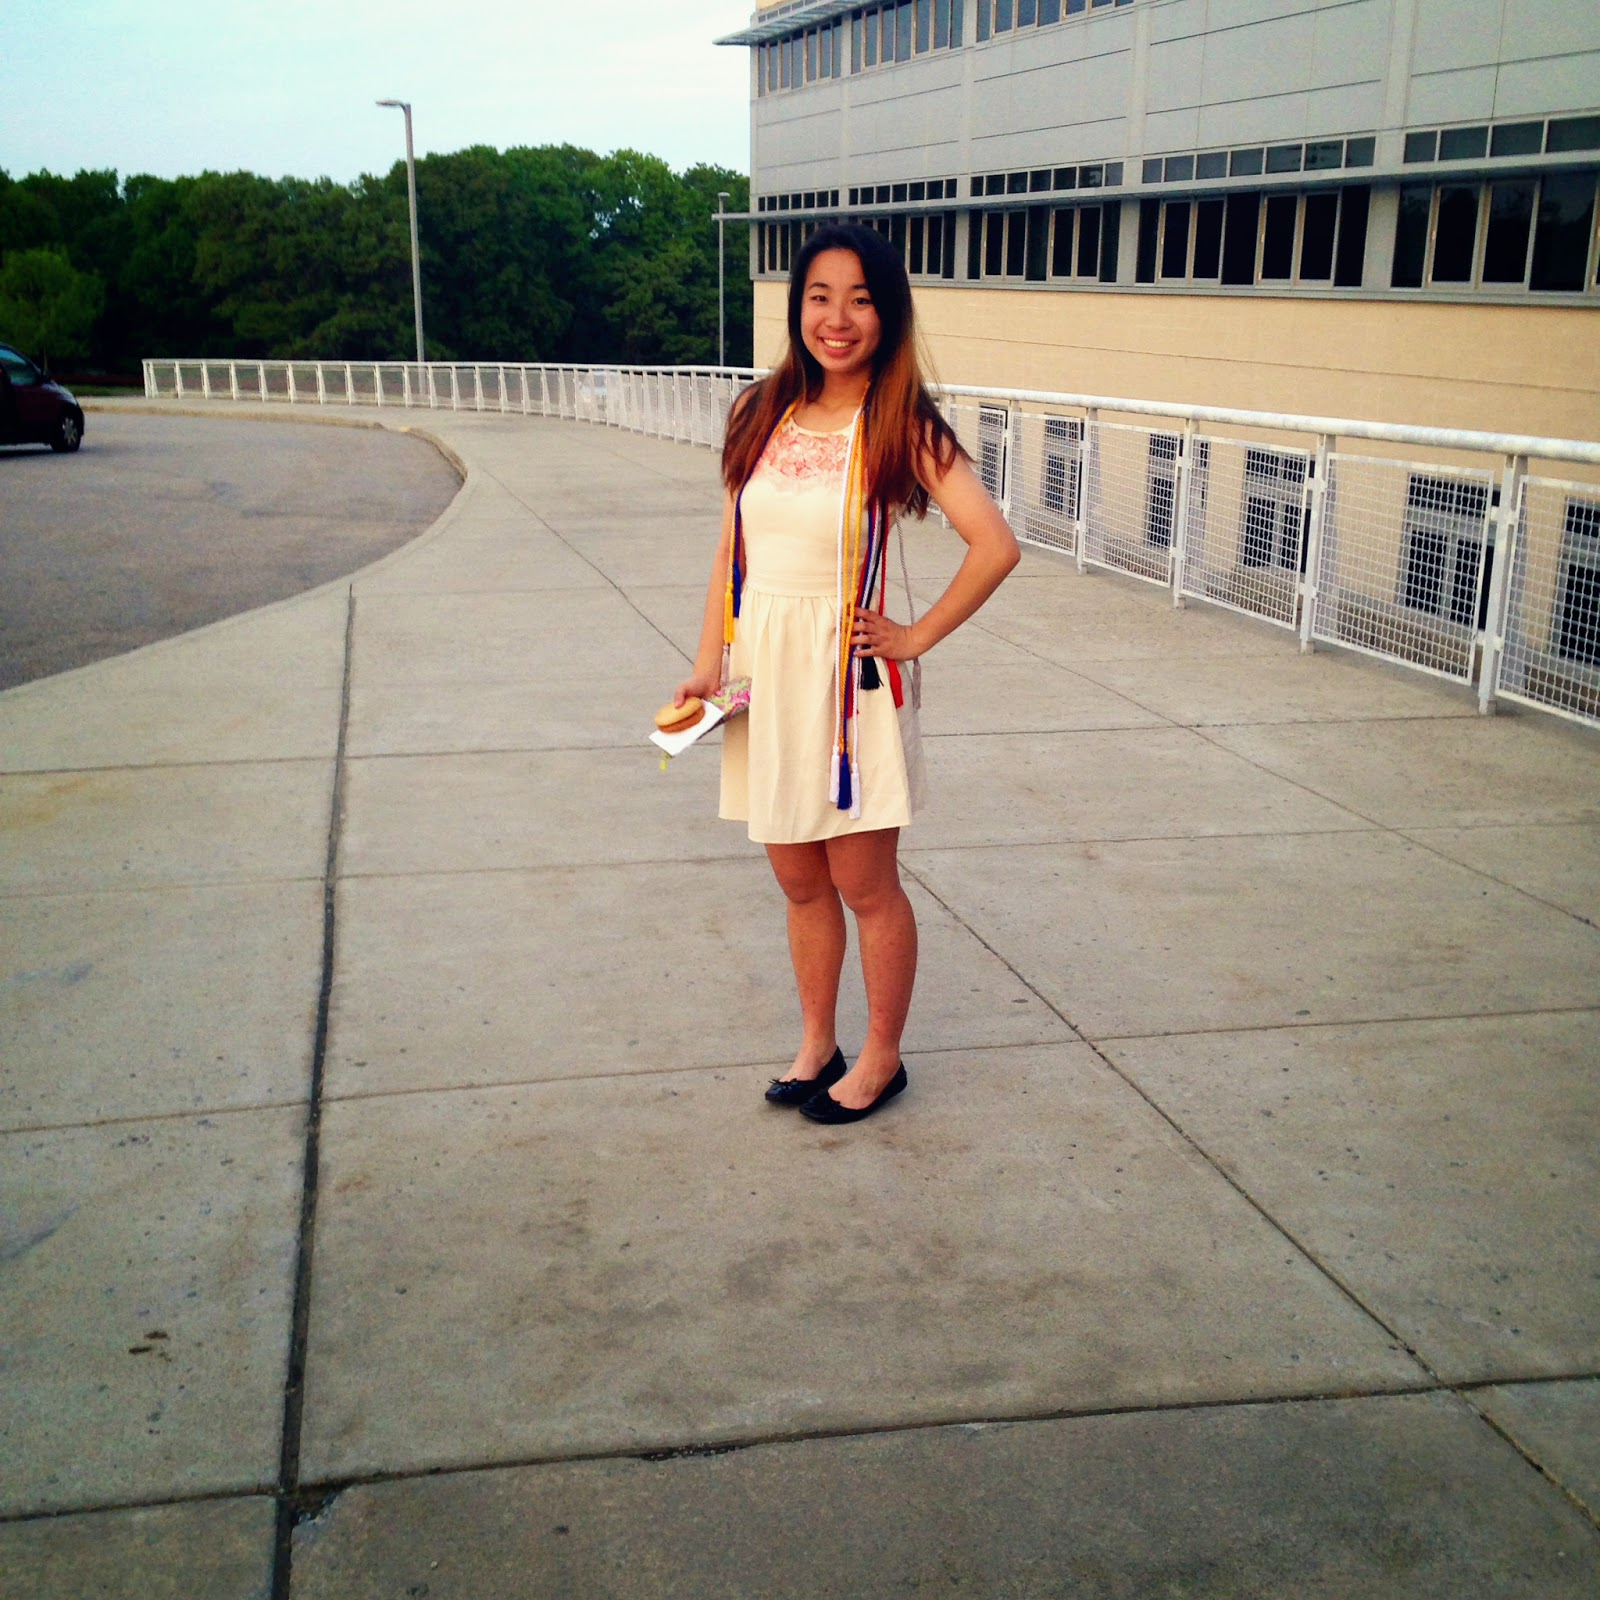 Honor Cords Senior Year